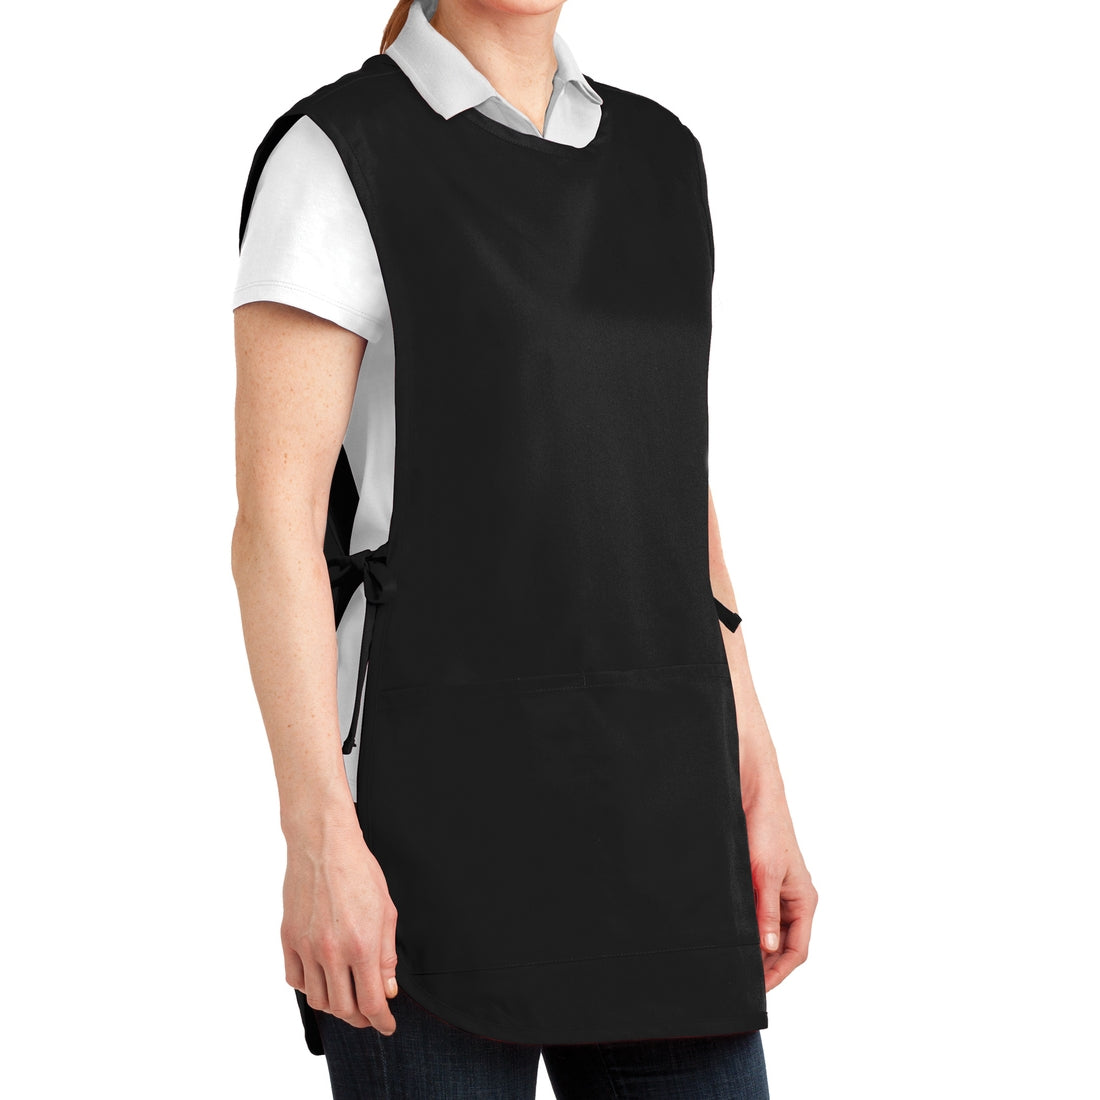 Easy Care Cobbler Apron with Stain Release - Black